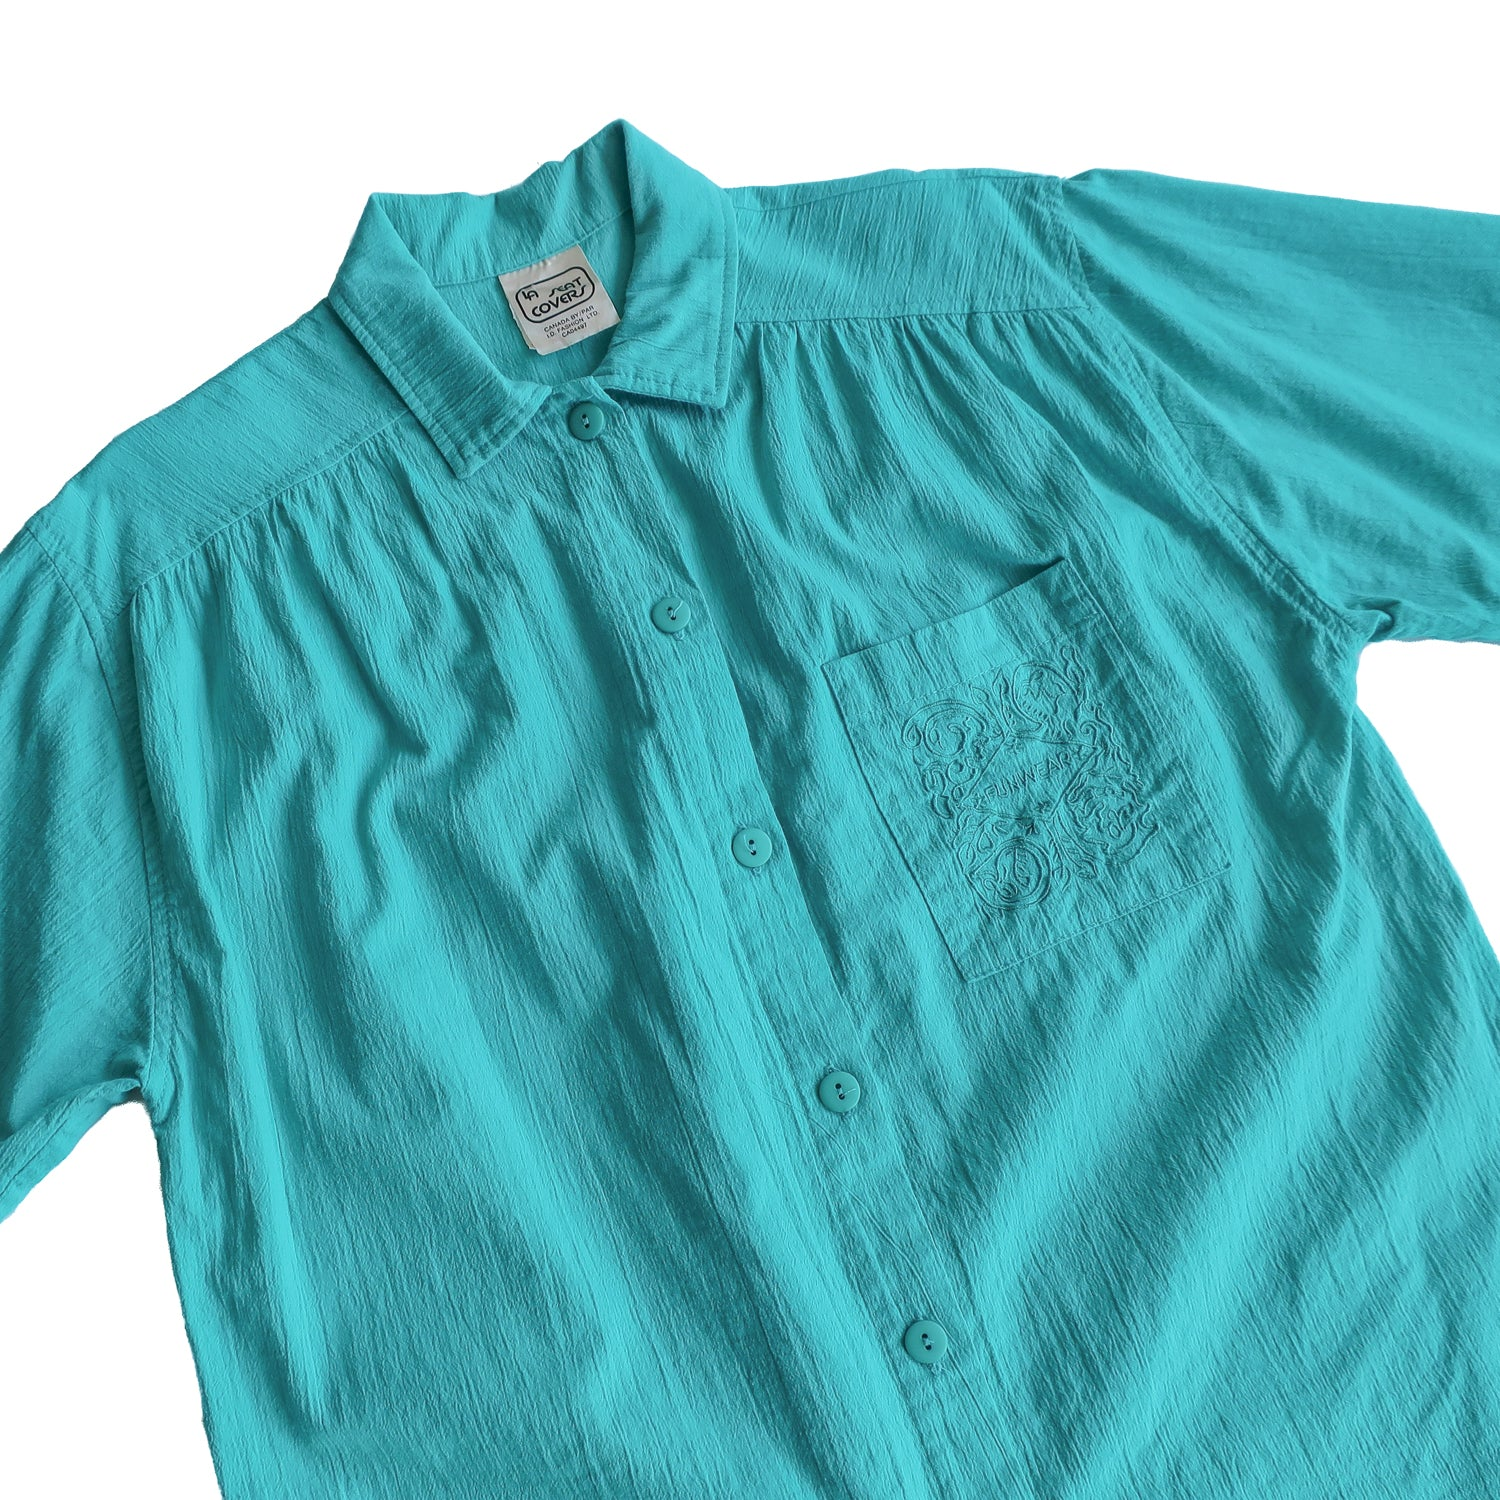 "Second Room Vintage Clothing. Vintage turquoise green button up shirt, with one breast pocket with ""FUNWEAR"" embroidered on it. Free Shipping on all orders within North America."